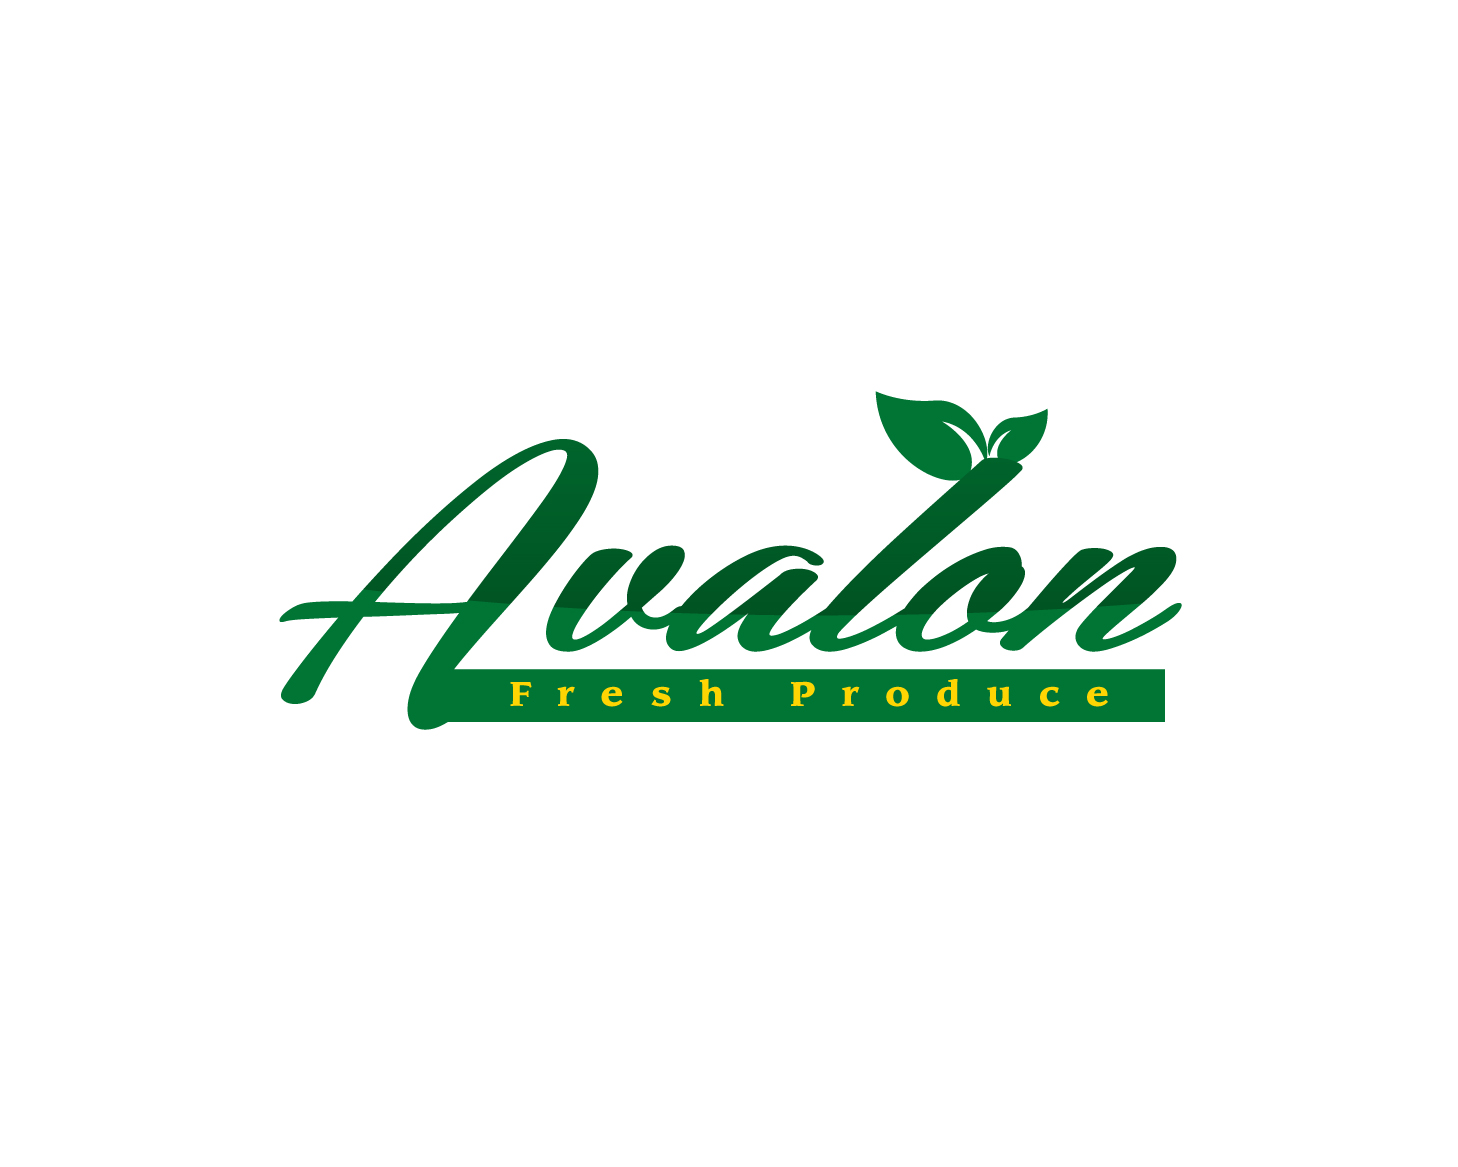 Logo Design by rA - Entry No. 69 in the Logo Design Contest Unique Logo Design Wanted for Avalon Fresh Produce.